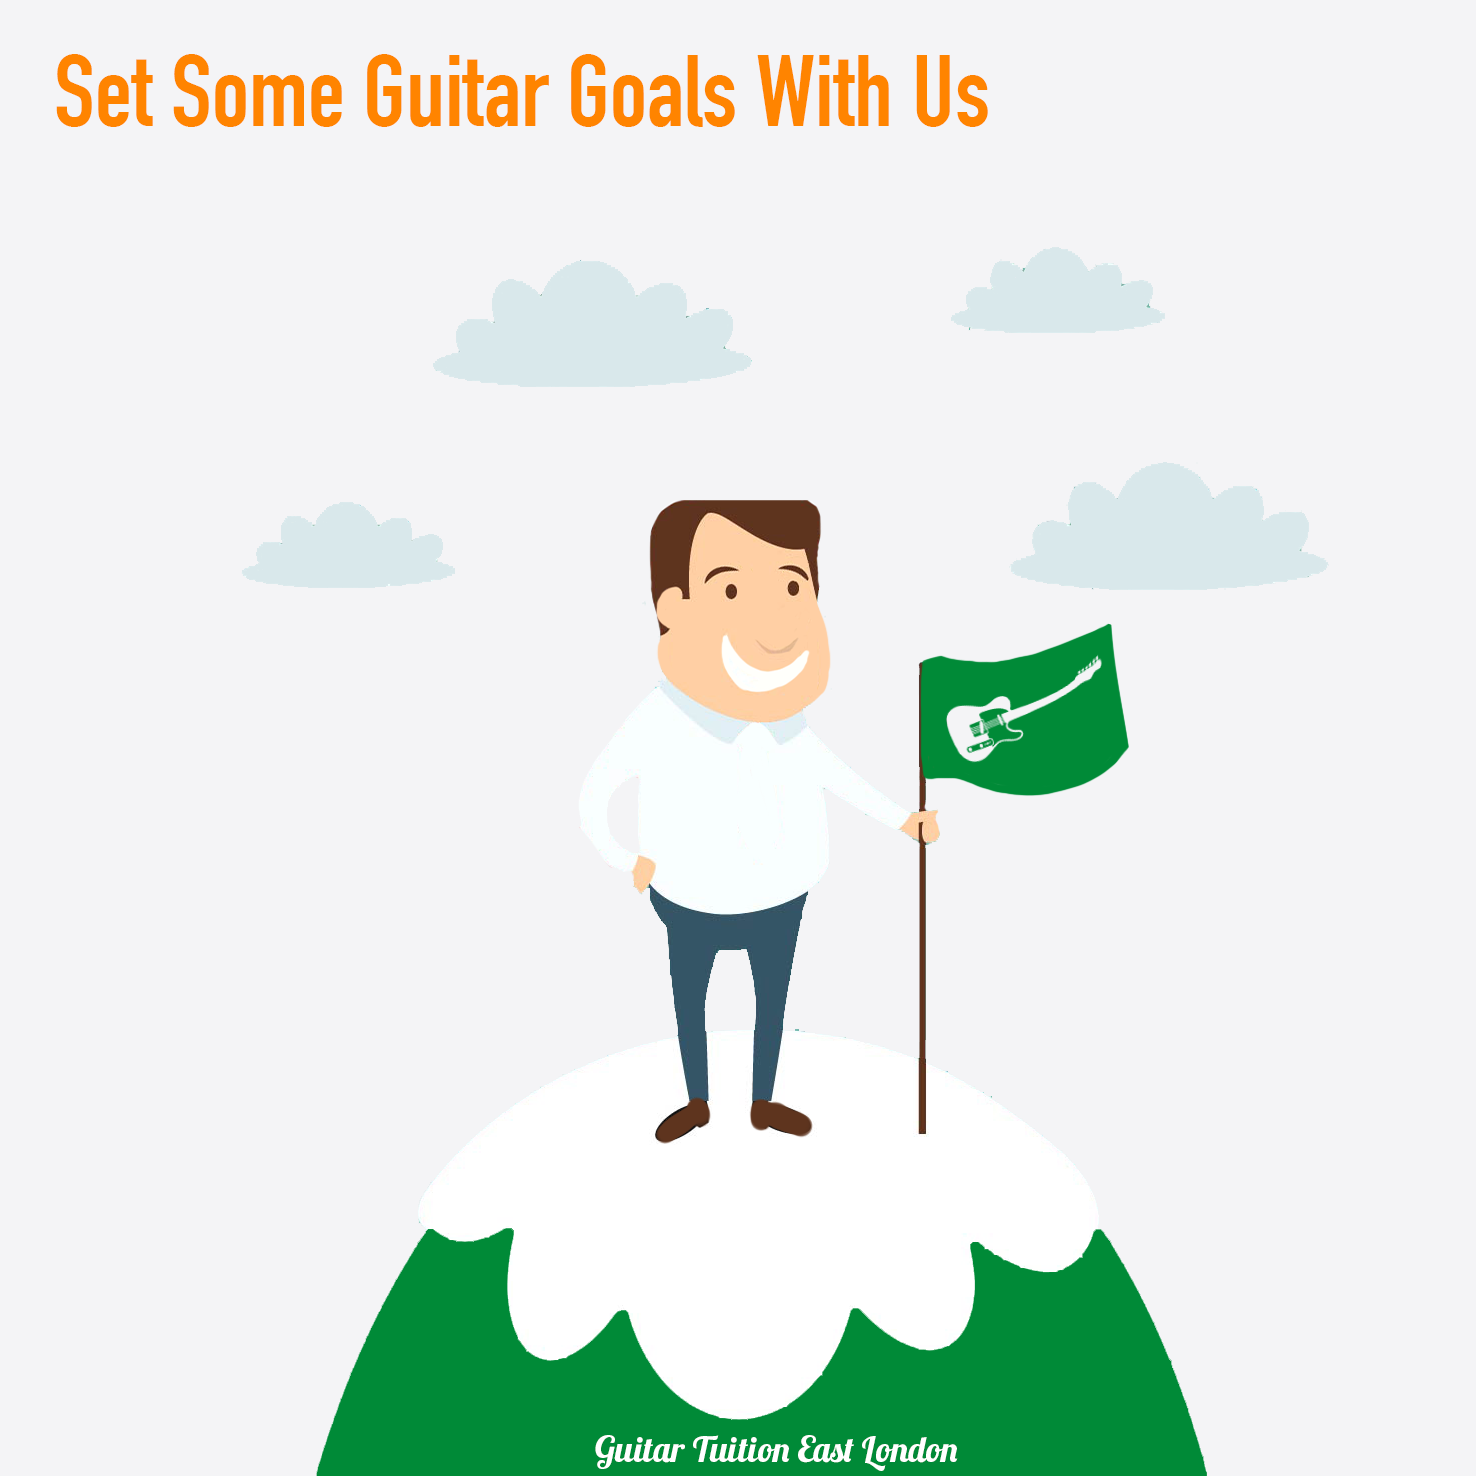 Let us help you reach your guitar playing goals!